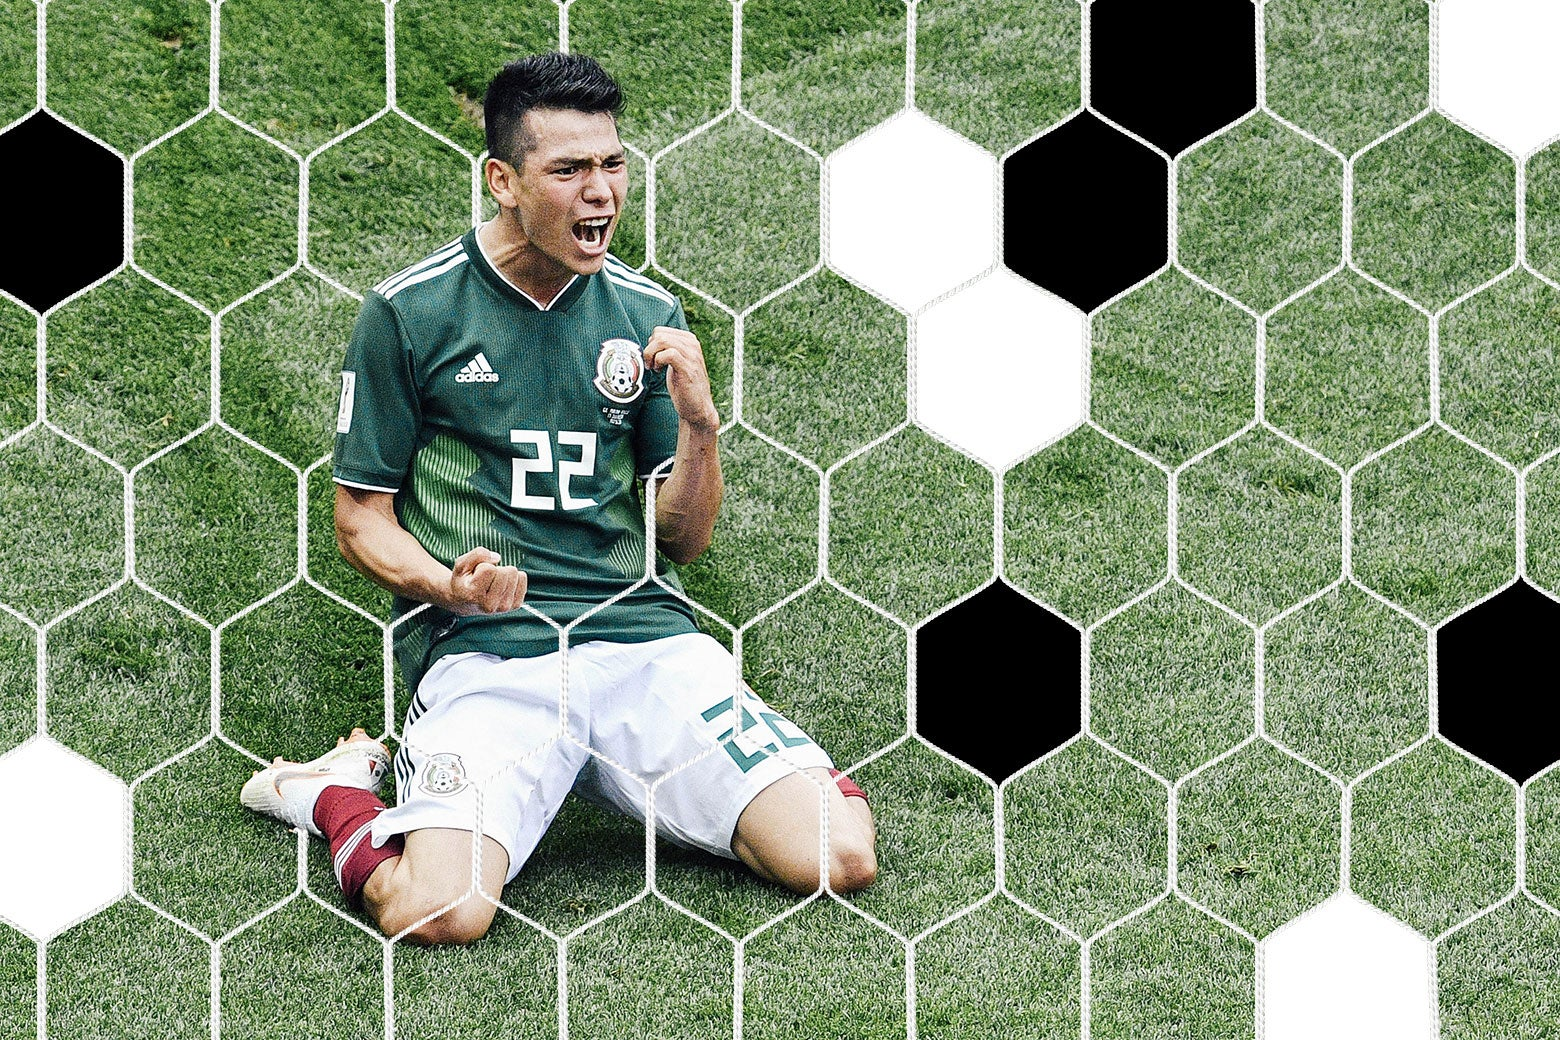 Hirving Lozano kneels on the pitch and pumps his fist in celebration.